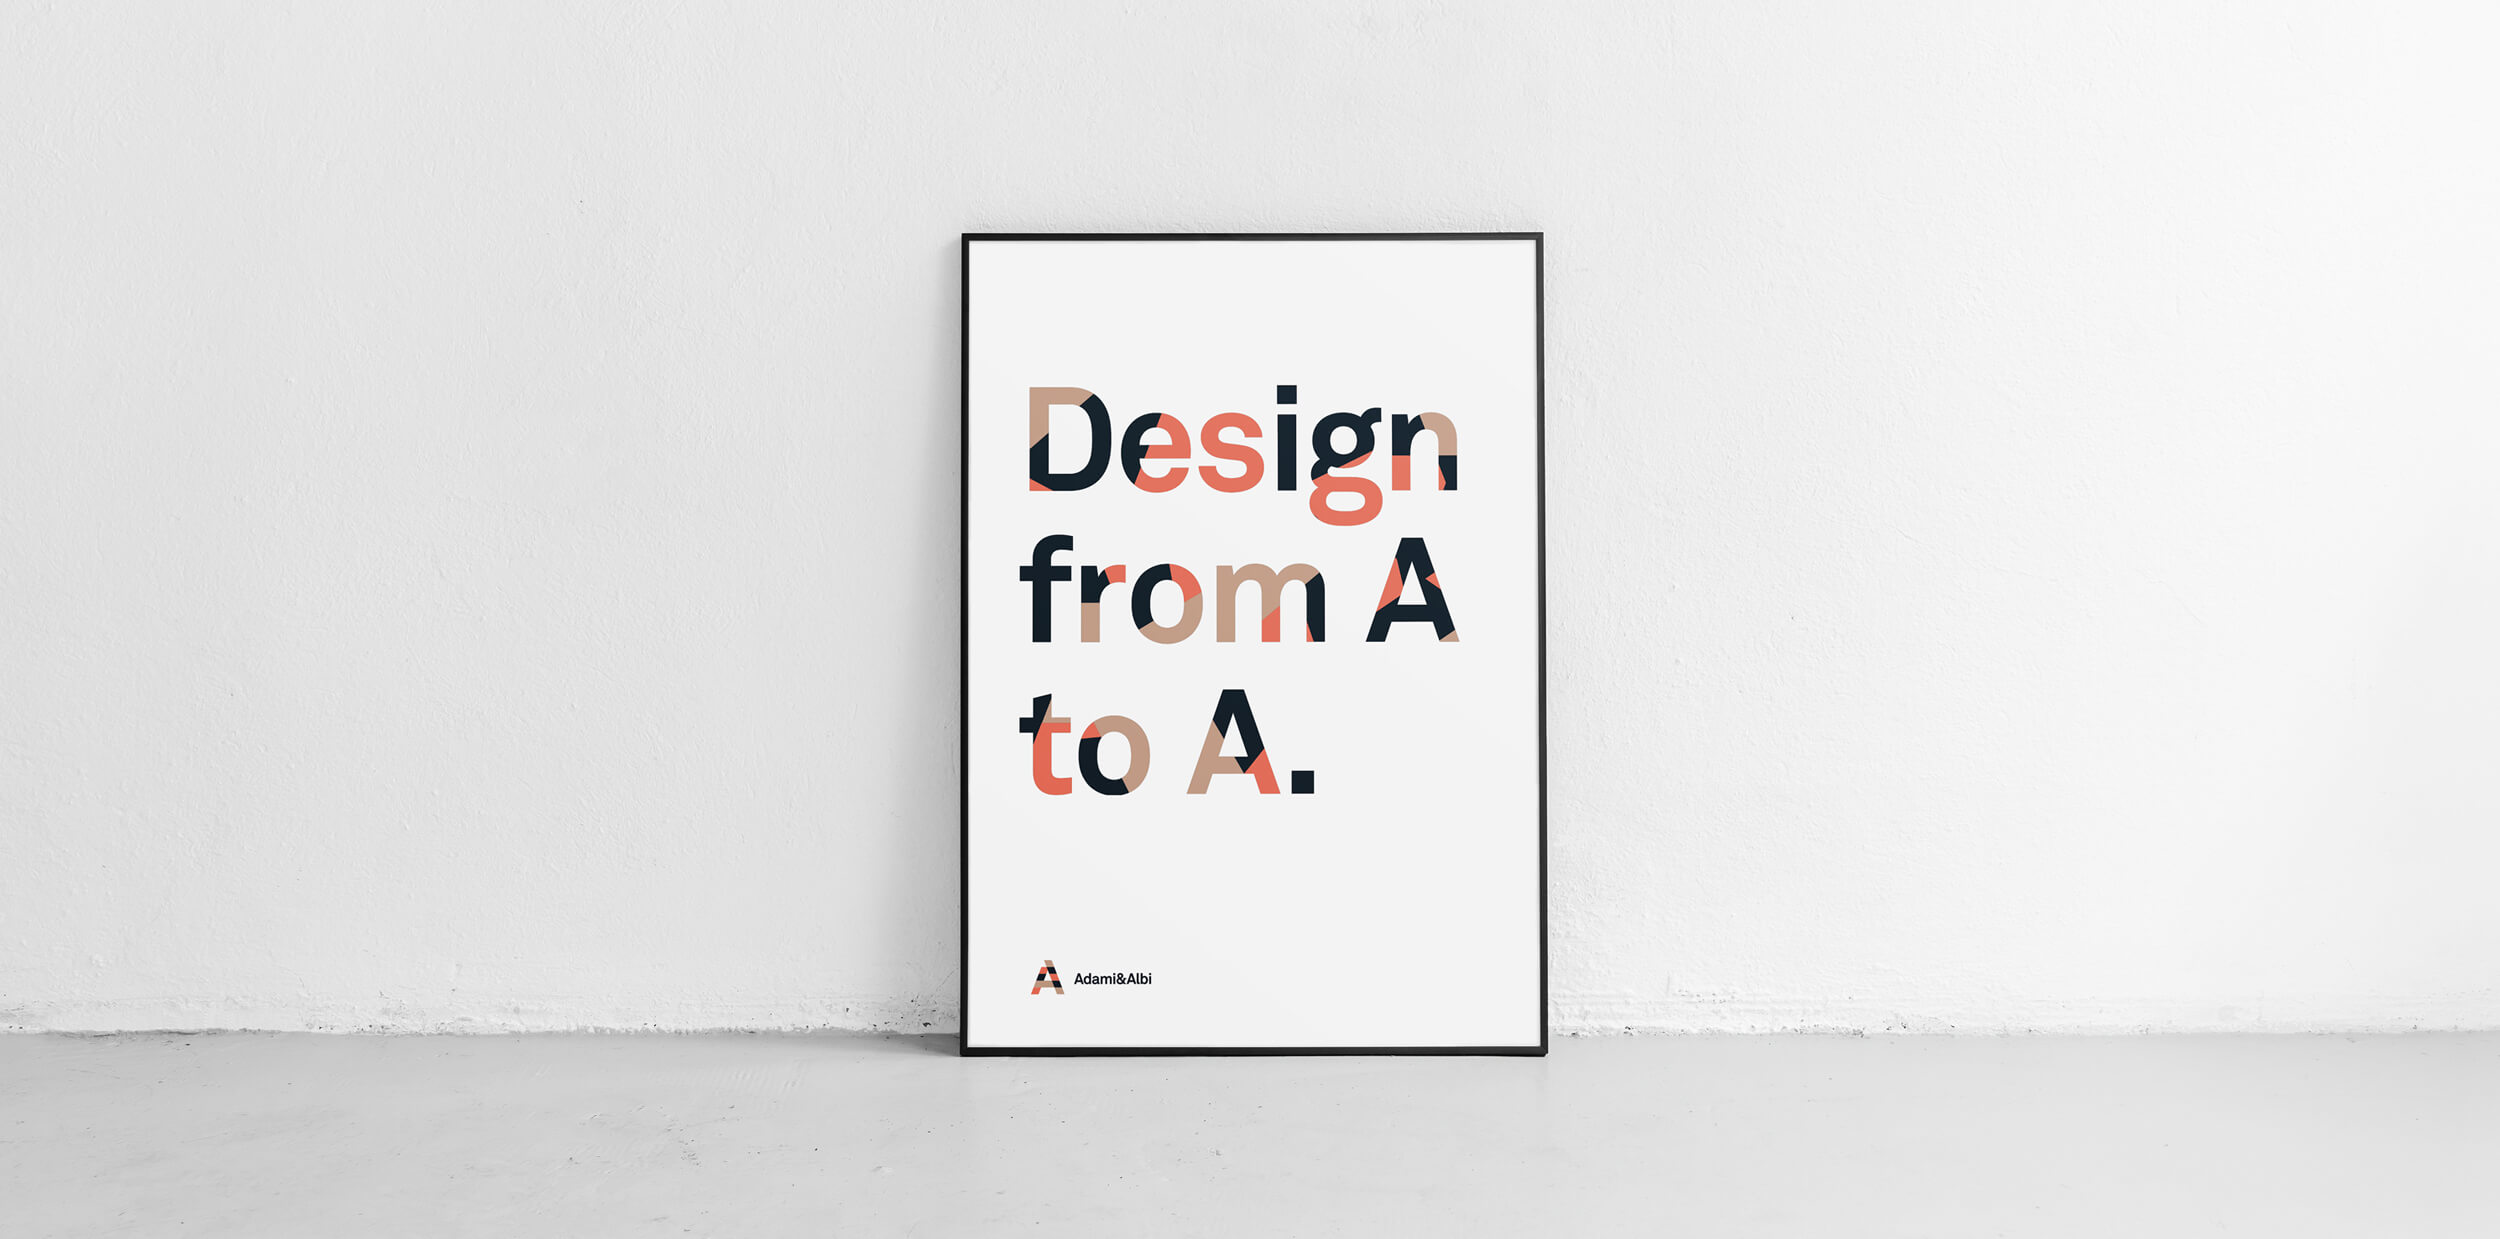 Design from A to A